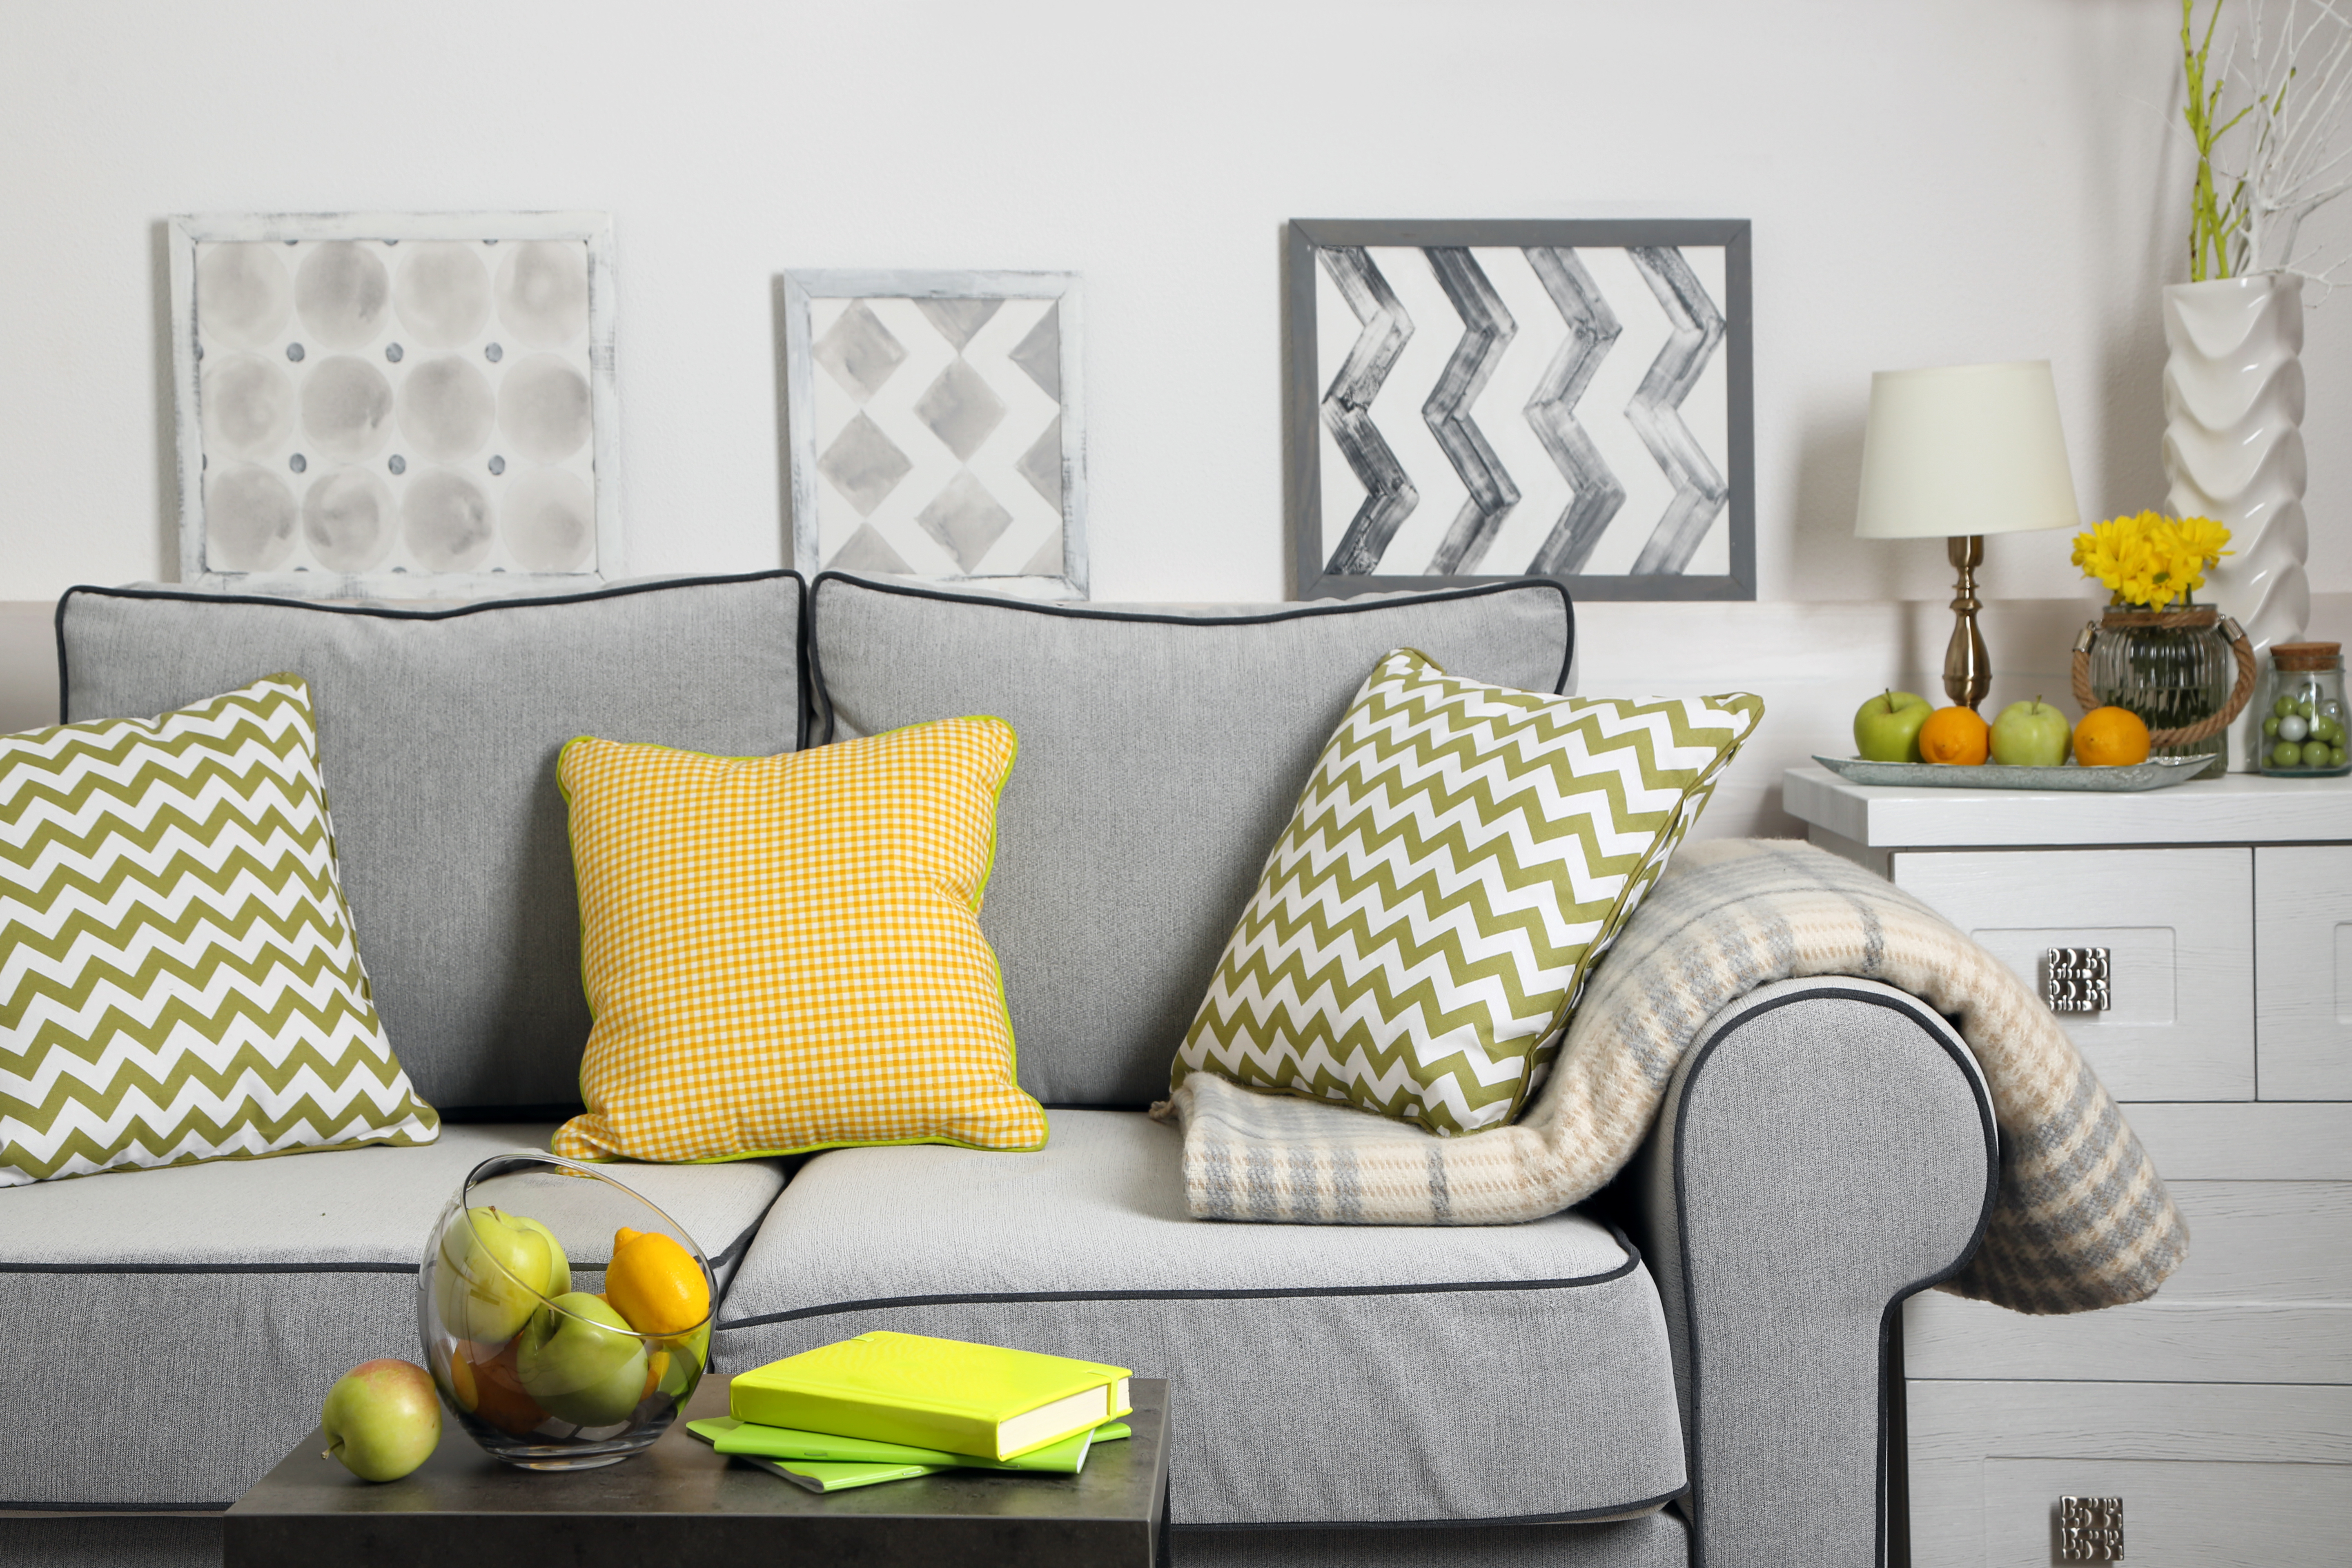 Beau Tips For Choosing The Right Sofa For Your Living Room